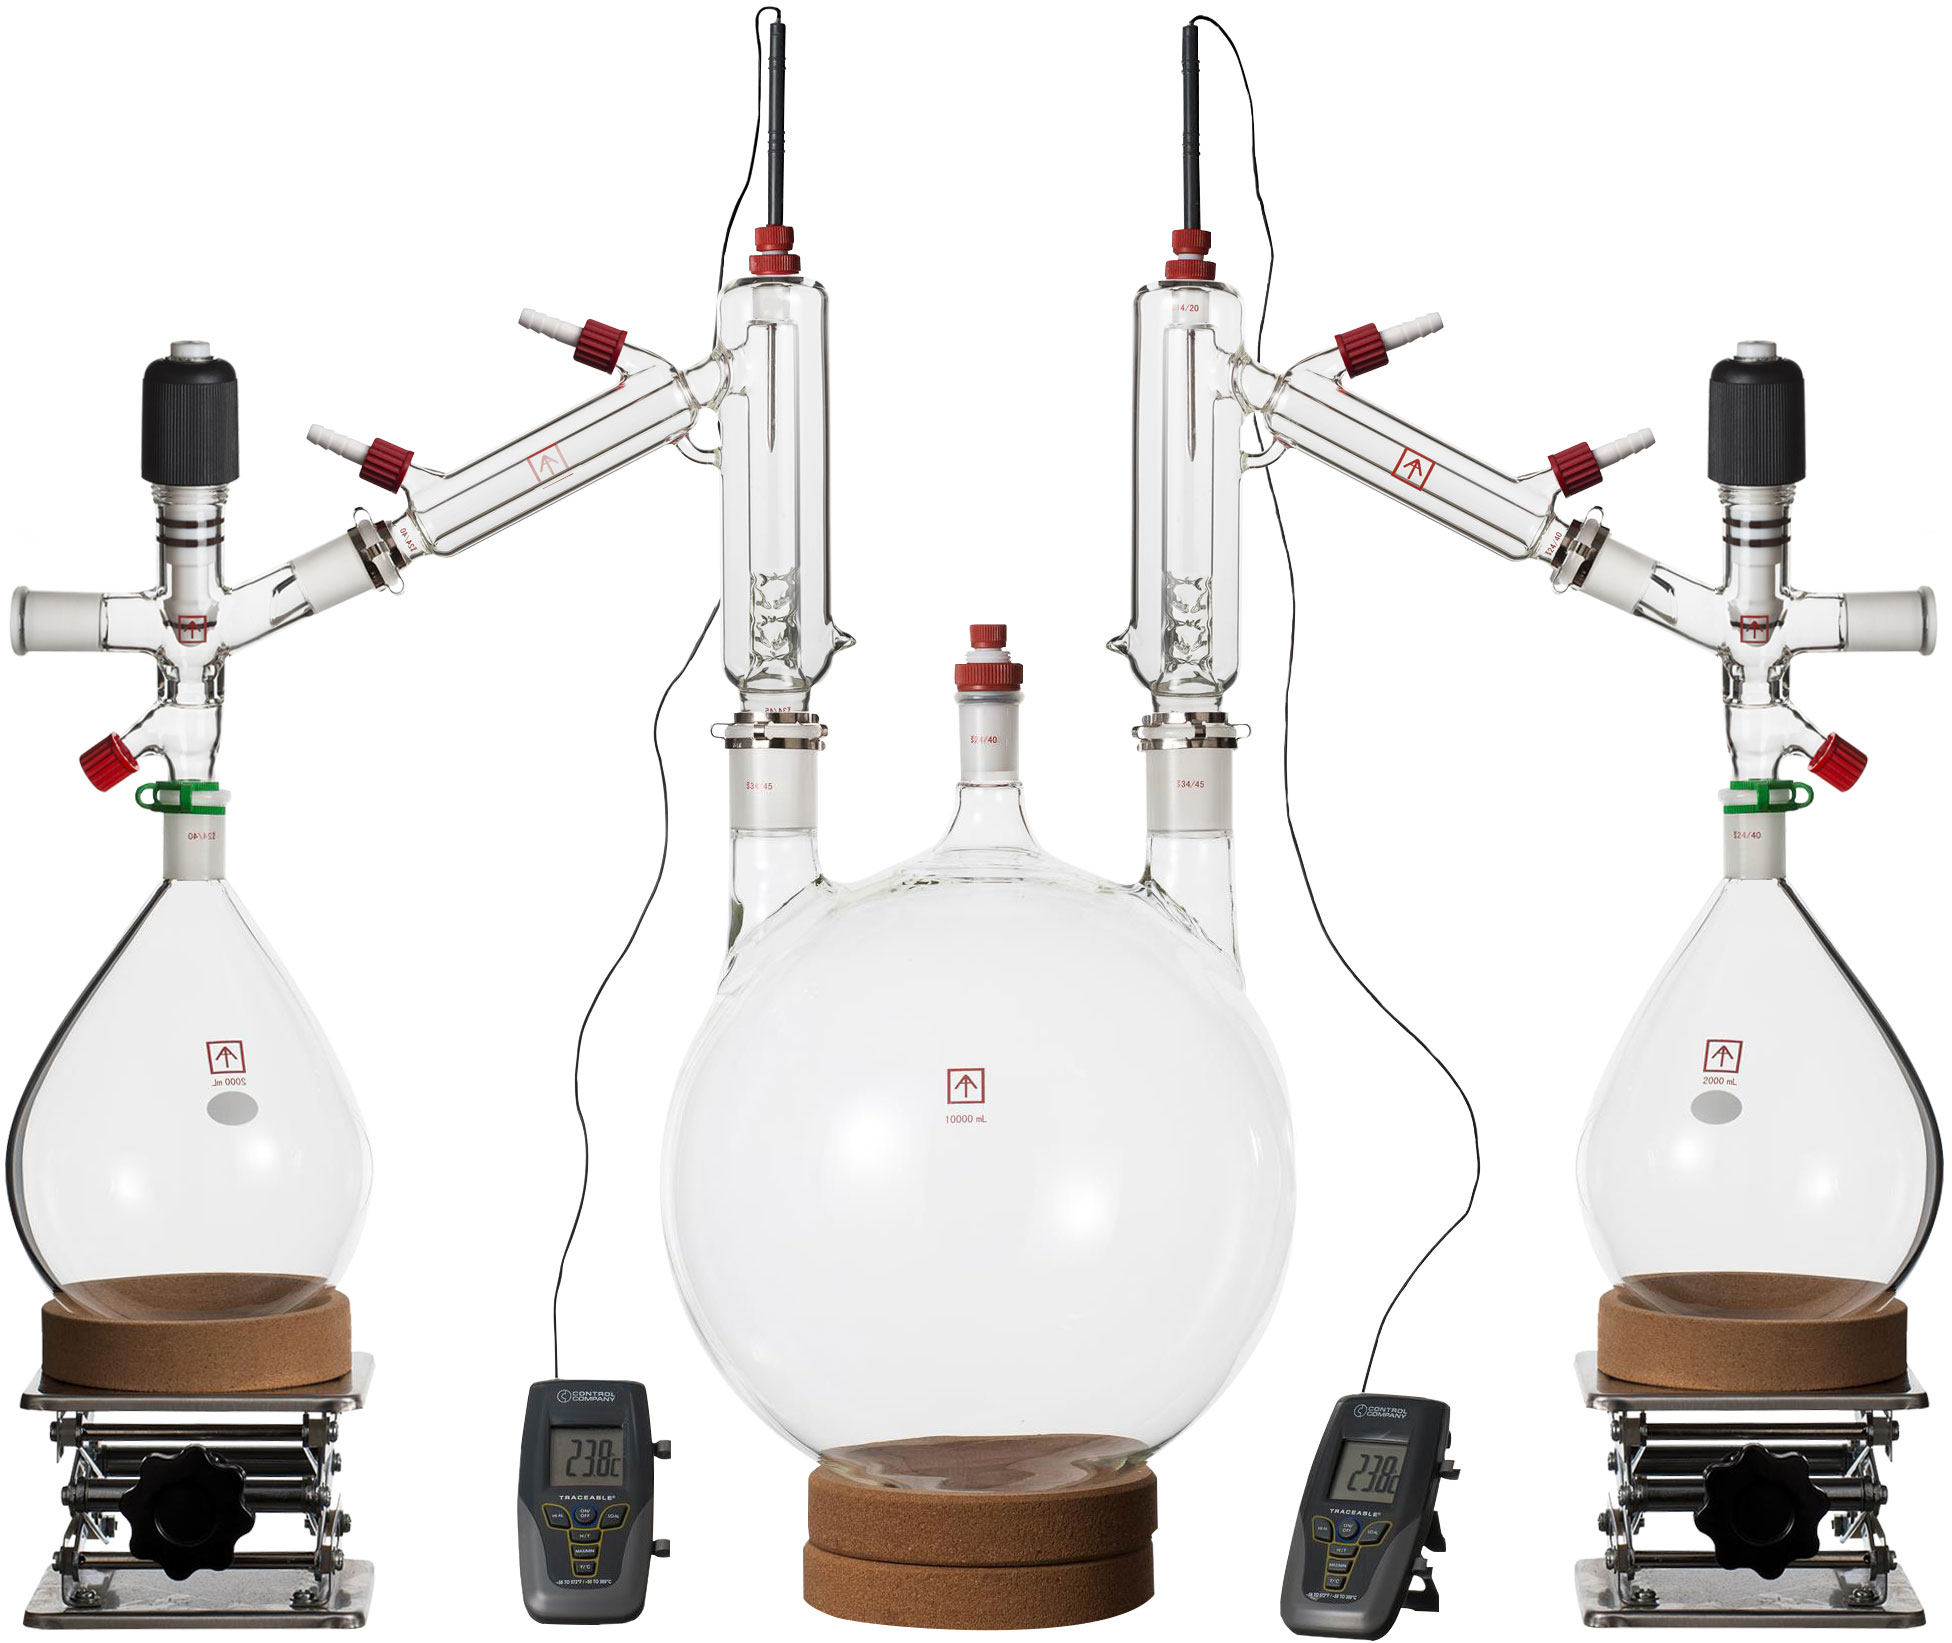 Ai 10 Liter Short Path Distillation Kit with Valved Adapters